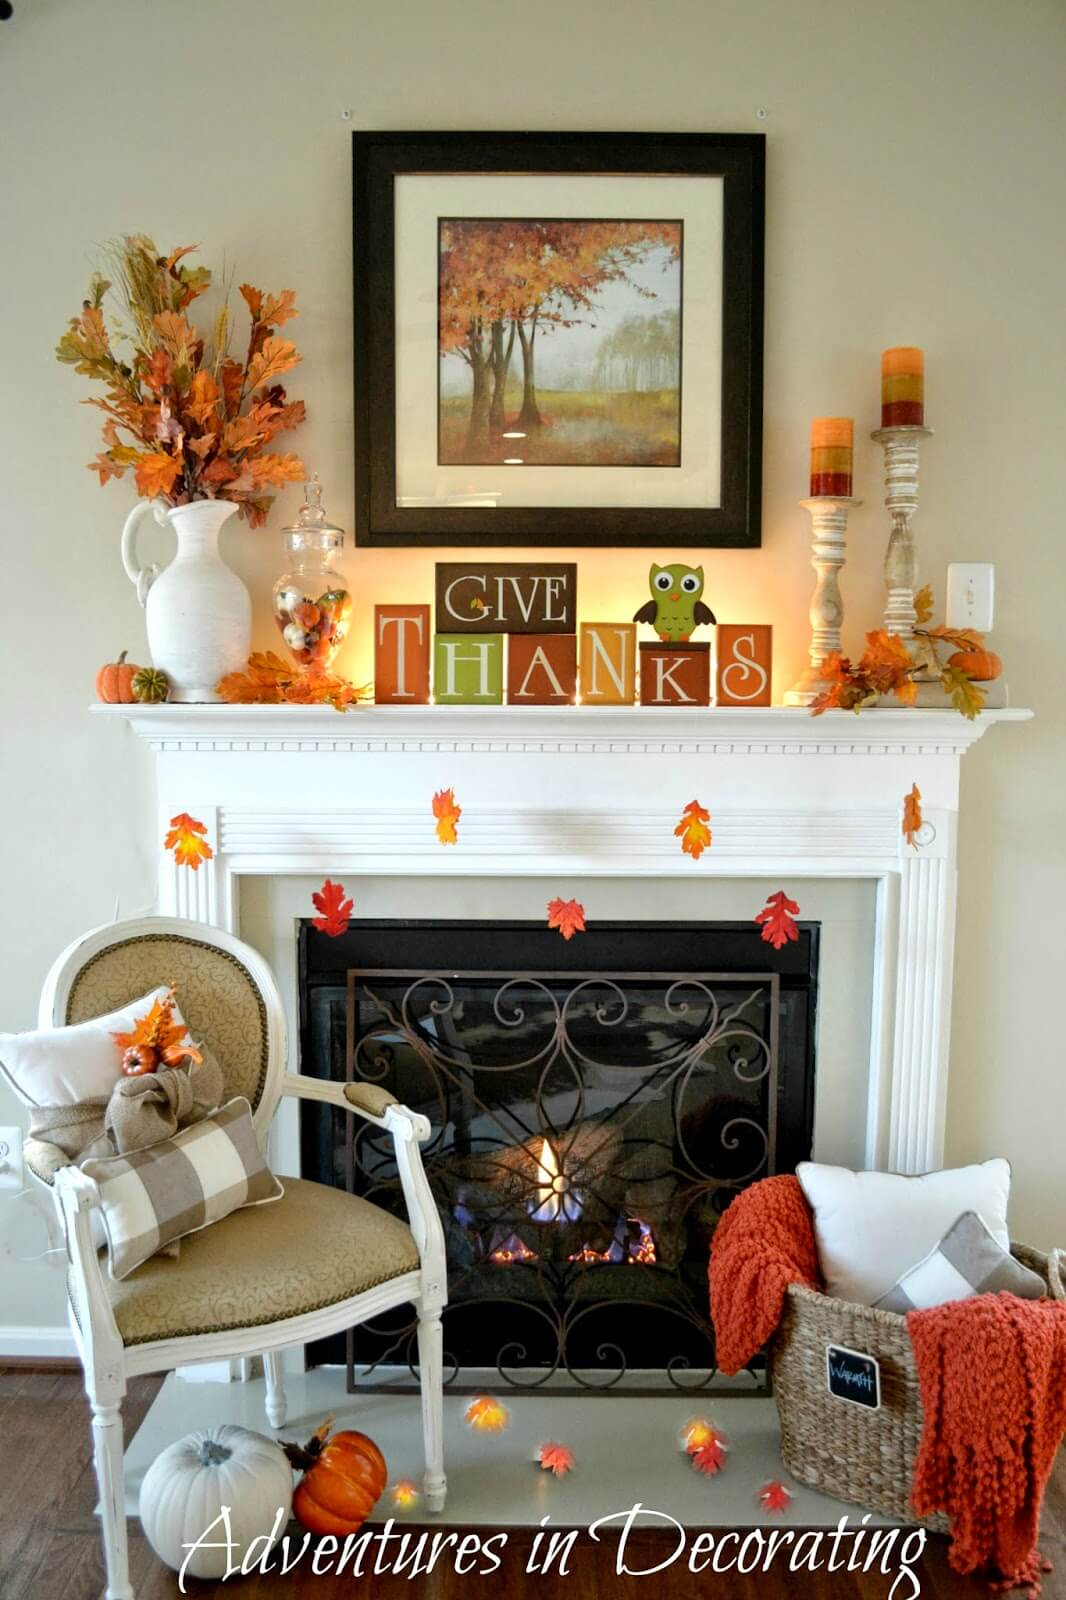 A Natural Autumn Fireplace Display in Orange